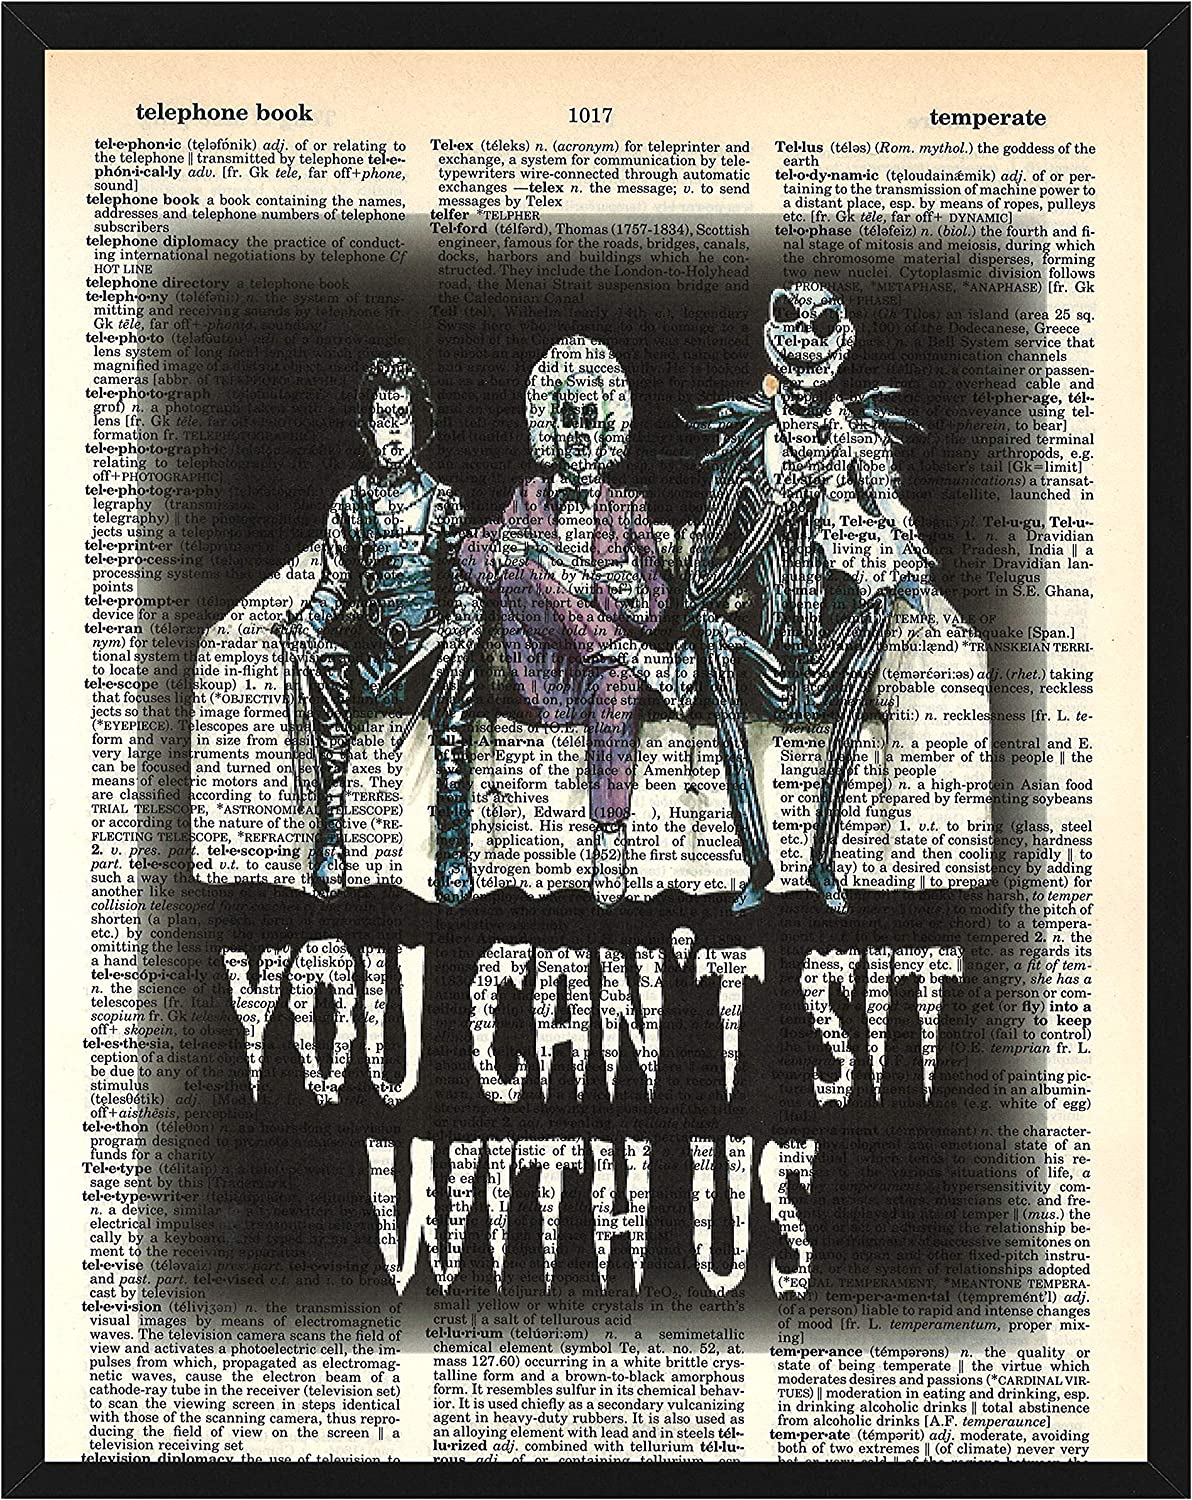 You Can't Sit With Us Wall Decor Featuring Tim Burton Characters Edward Scissorhands, Beetlejuice and Jack Skellington Dictionary Art 8 x 10 Print